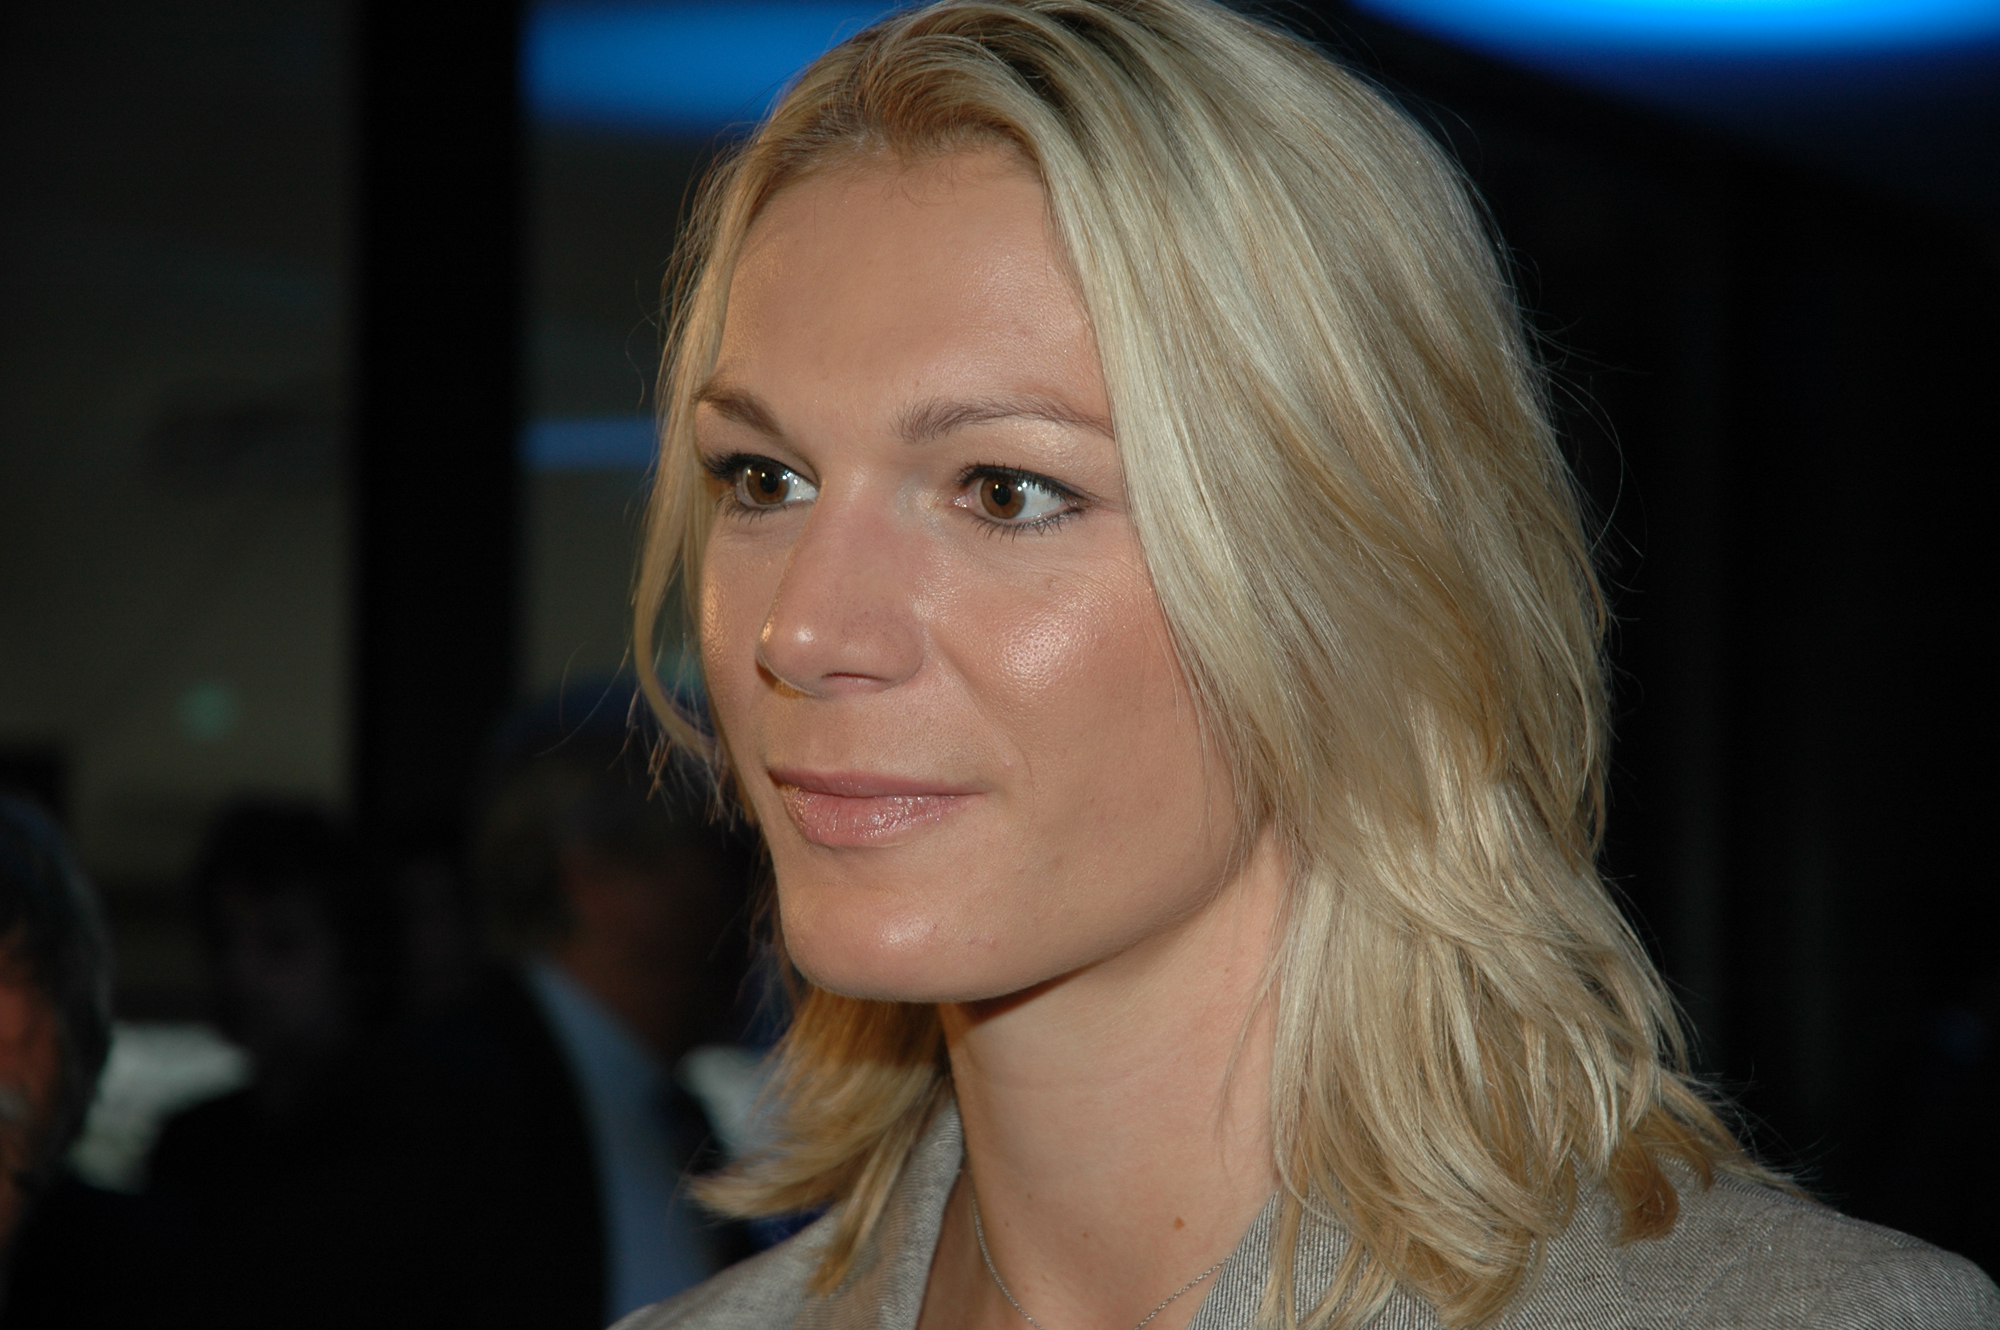 The 32-year old daughter of father Siegfried and mother Monika, 181 cm tall Maria Höfl-Riesch in 2017 photo